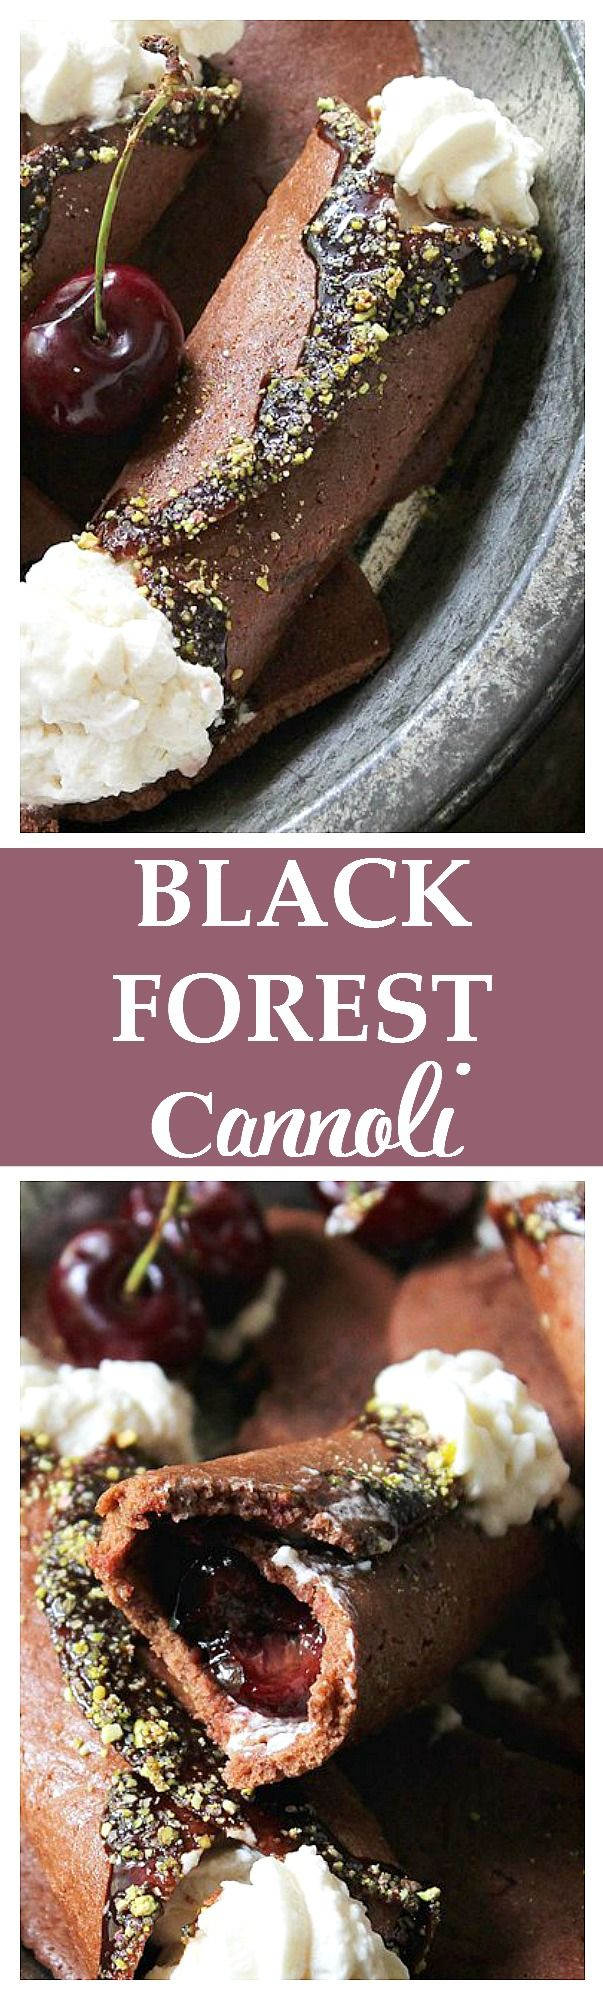 Black Forest Cannoli - Chocolate Cannoli stuffed with roasted cherries and cherry-liqueur whipped cream. SO amazing!